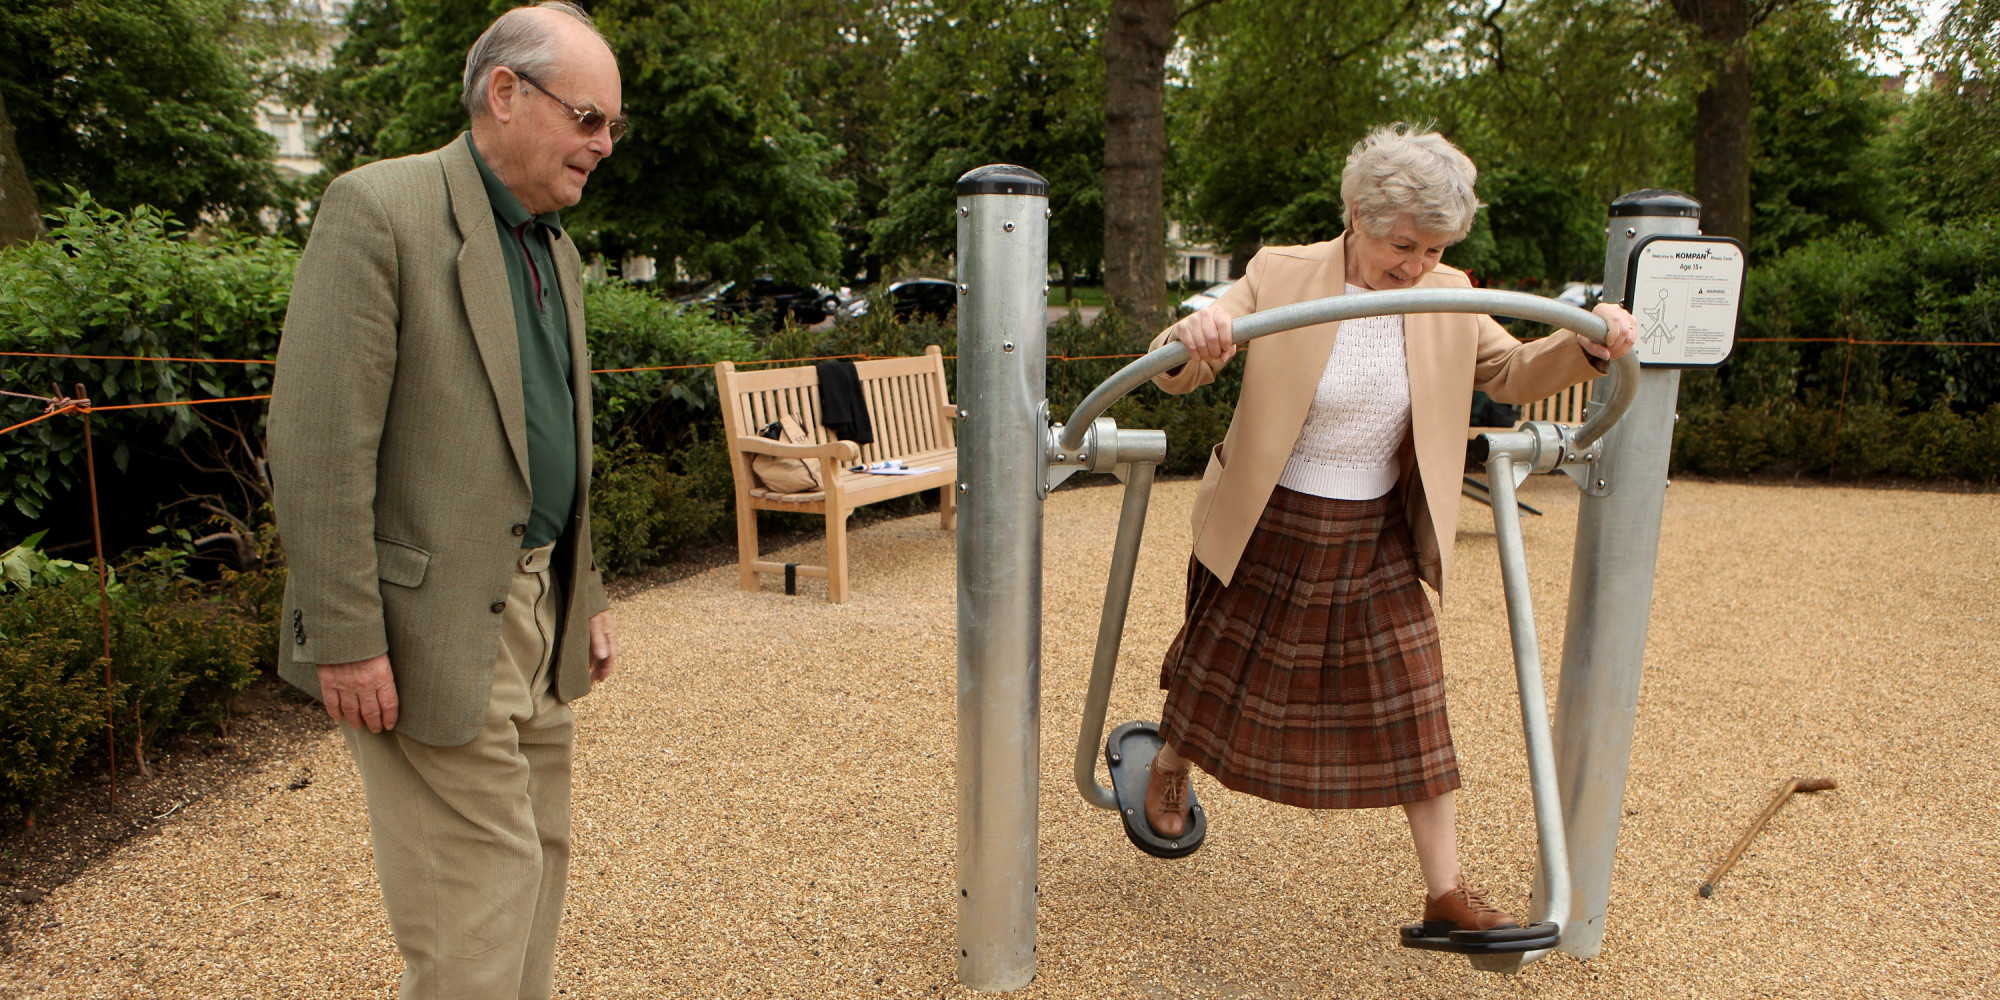 playgrounds for seniors improve fitness, reduce isolation | huffpost